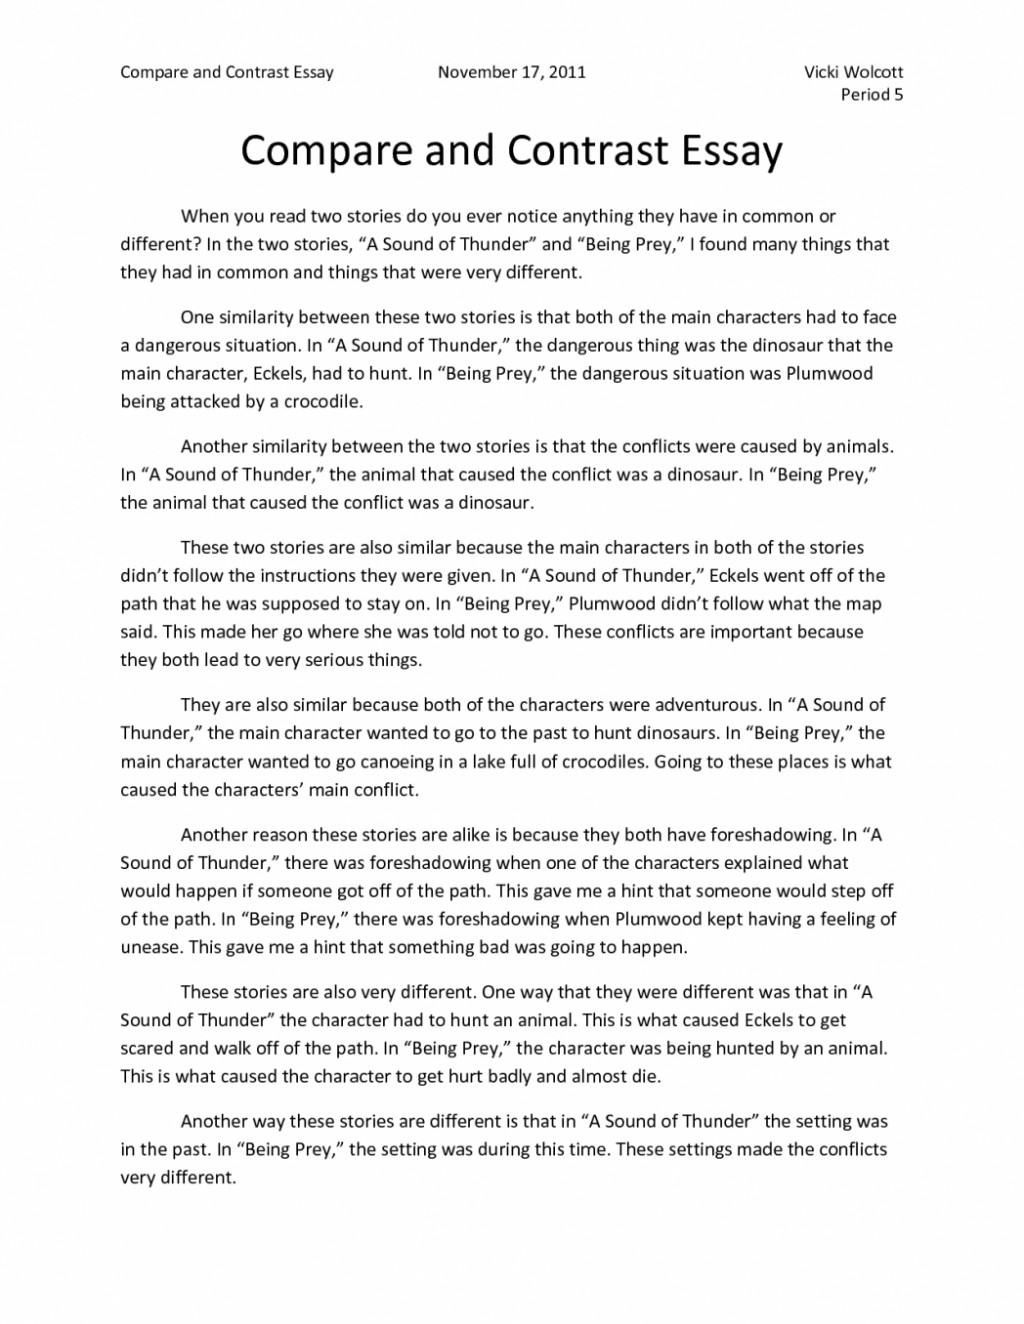 002 Contrast Essay Example Essays Writing Comparison And Of Compare Examples Middle School High Vs College 4th Grade Food Pdf Block Format Fantastic Topics Title Ideas Thesis Large